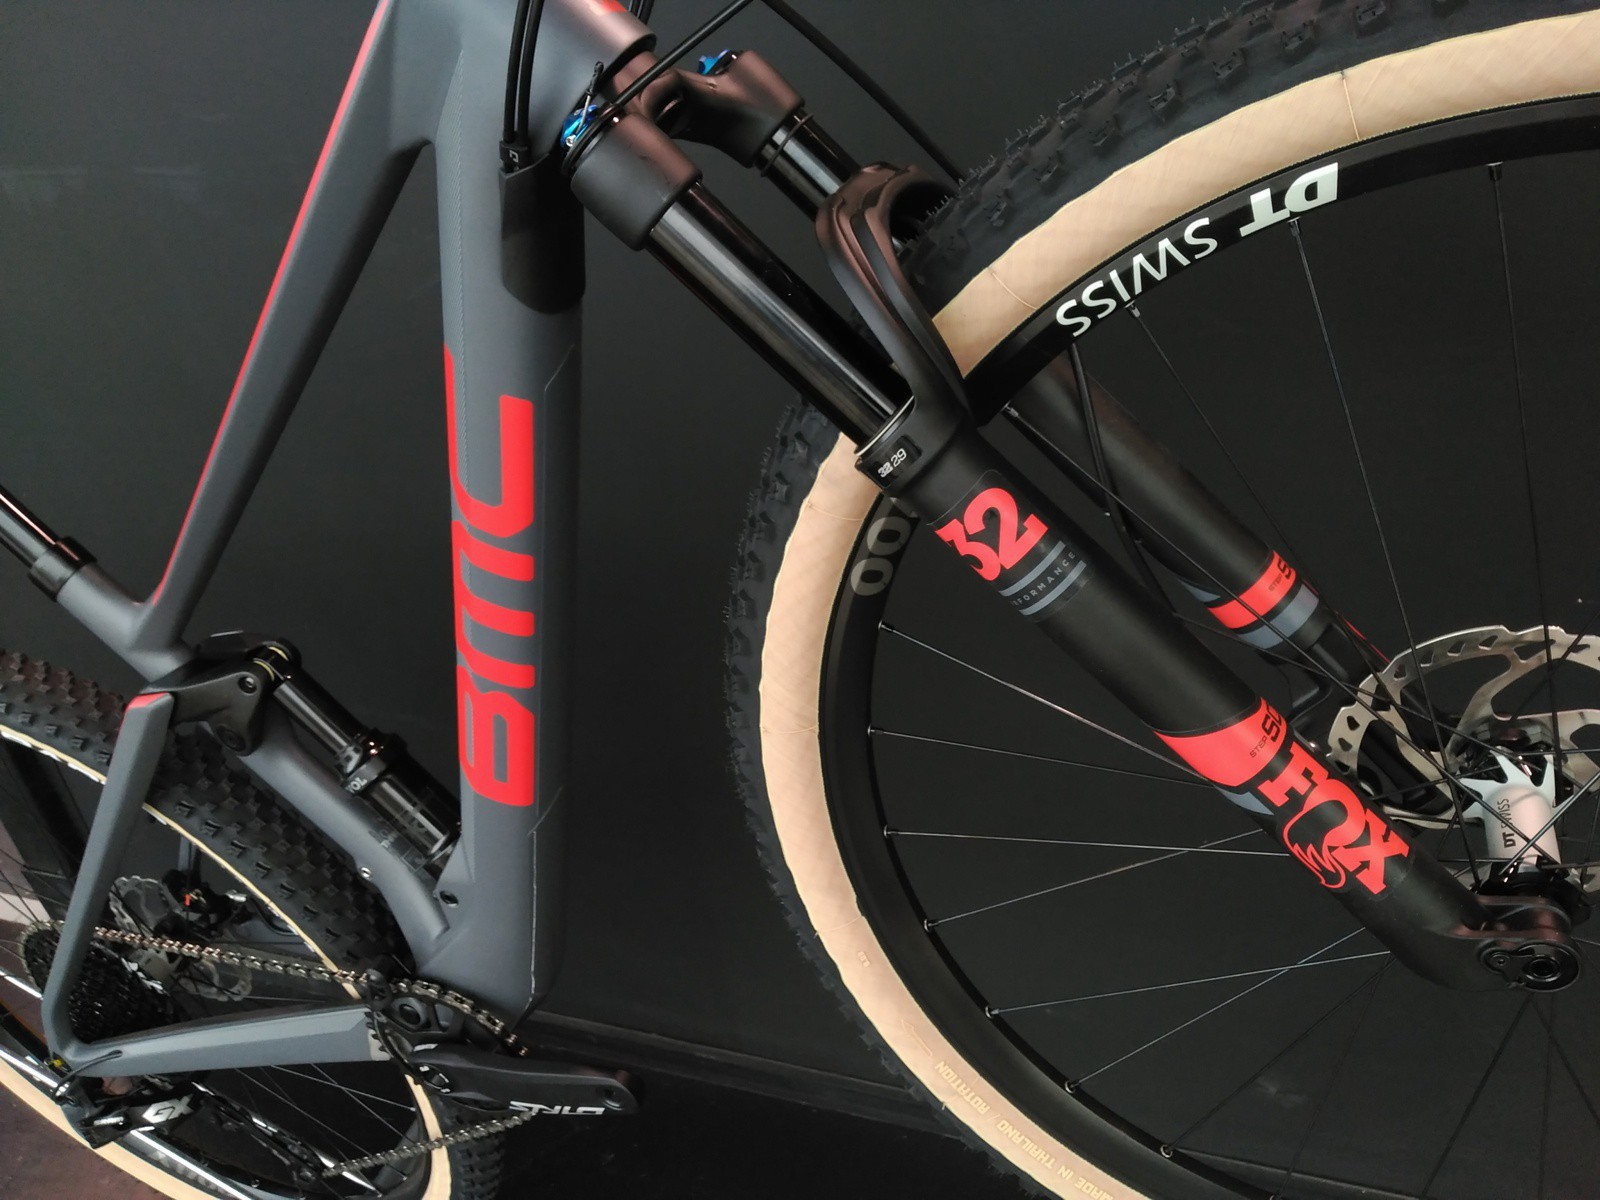 DISPONIBLE LA NUEVA BMC FOURSTROKE 01 DEL 2019